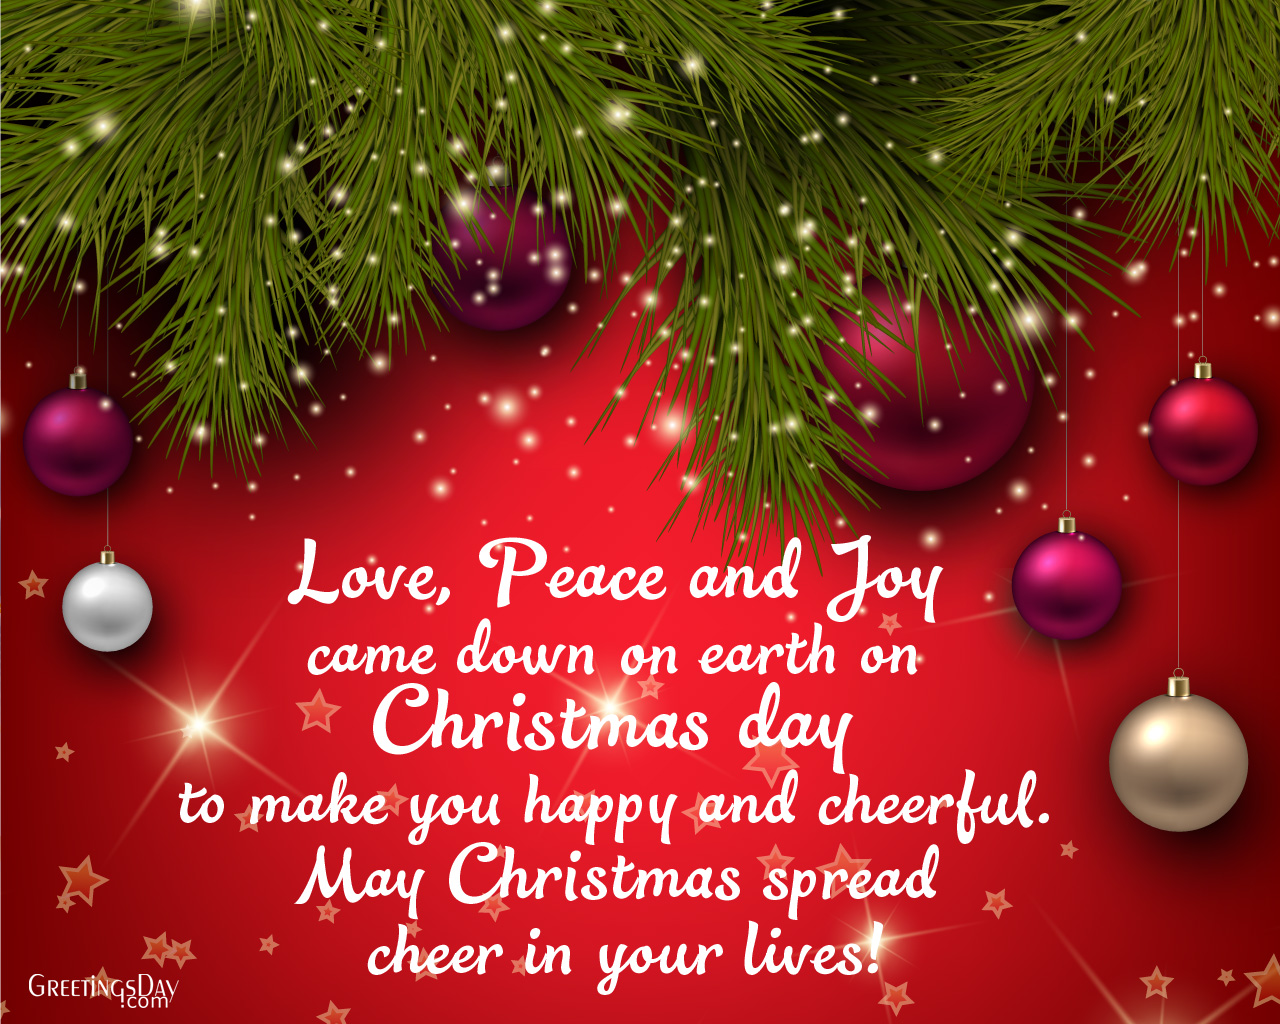 Love, Peace And Joy Came On Earth On Christmas Day To Make You Happy And  Cheerful. May Christmas Spread Cheer In Your Lives! Xmas Quote Pictures